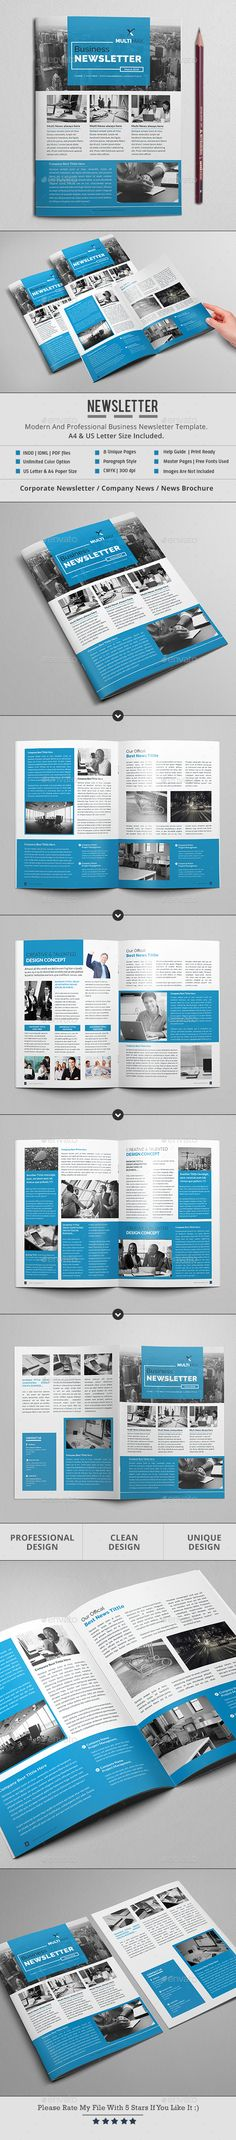 #Newsletter - Newsletters #Print #Templates Download here: https://graphicriver.net/item/newsletter/18106990?ref=alena994